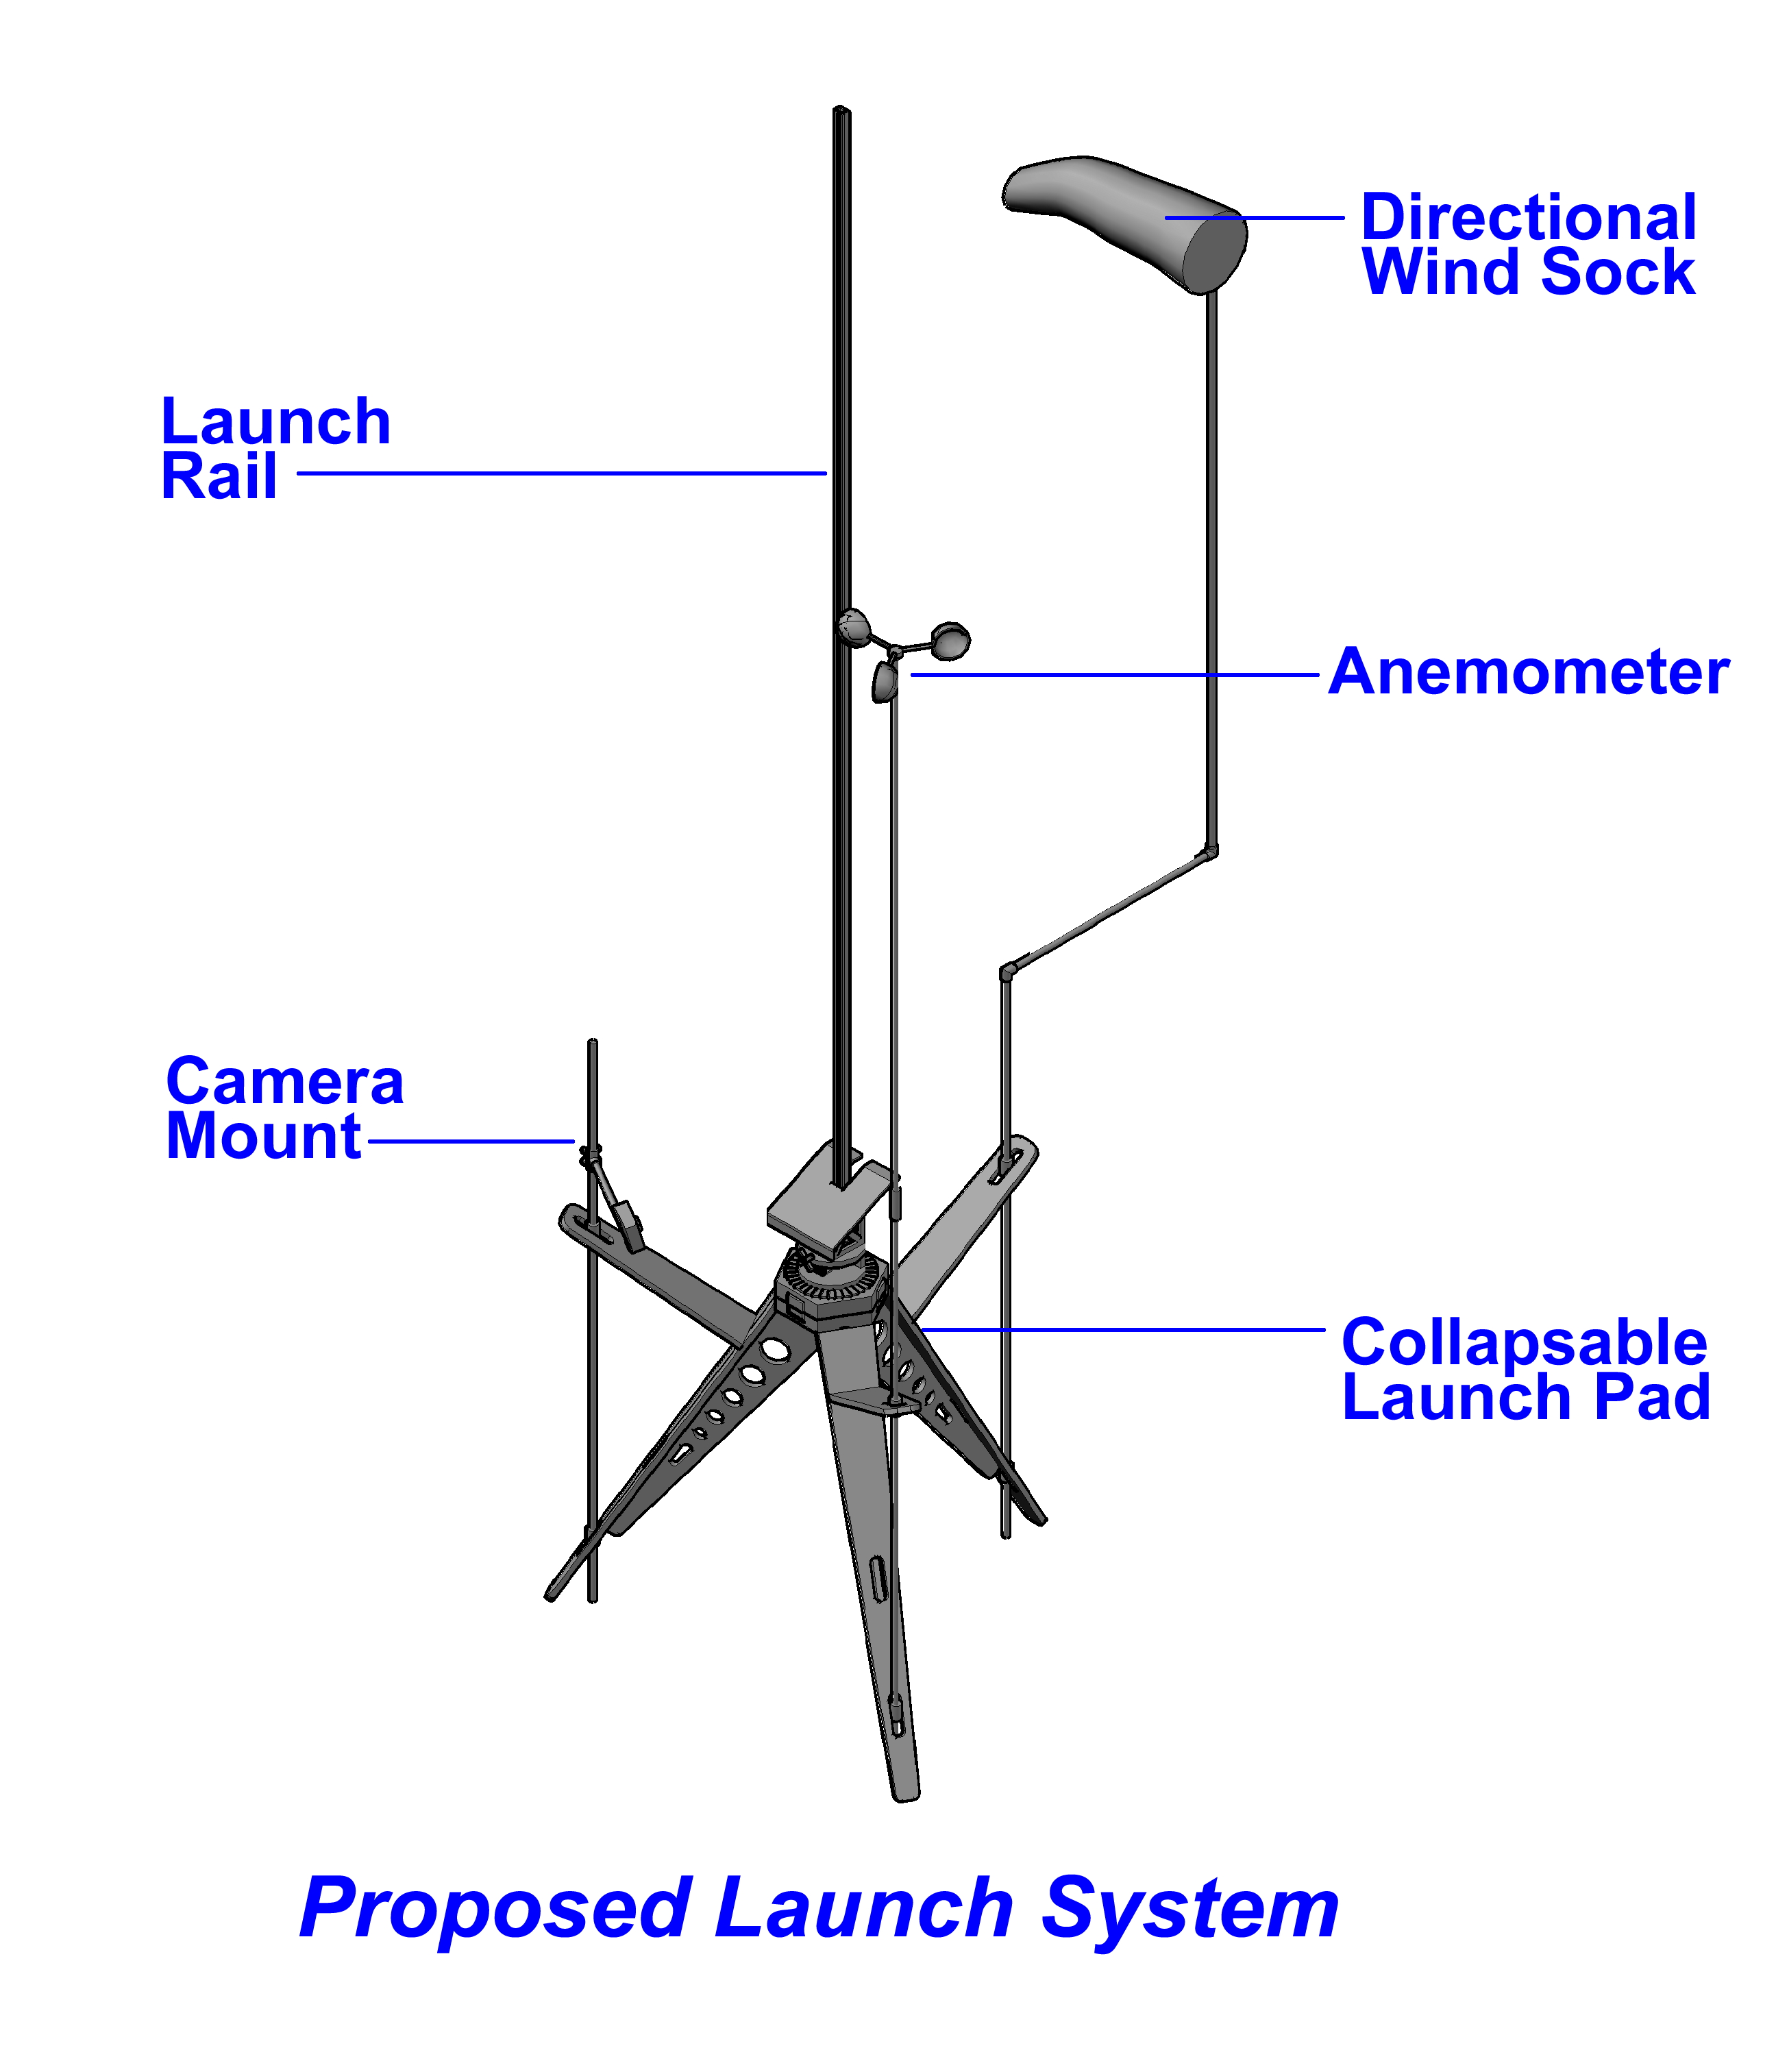 this pad will provide the user with not only the required launch gear but also additional accessory items such as pad wind speed and direction